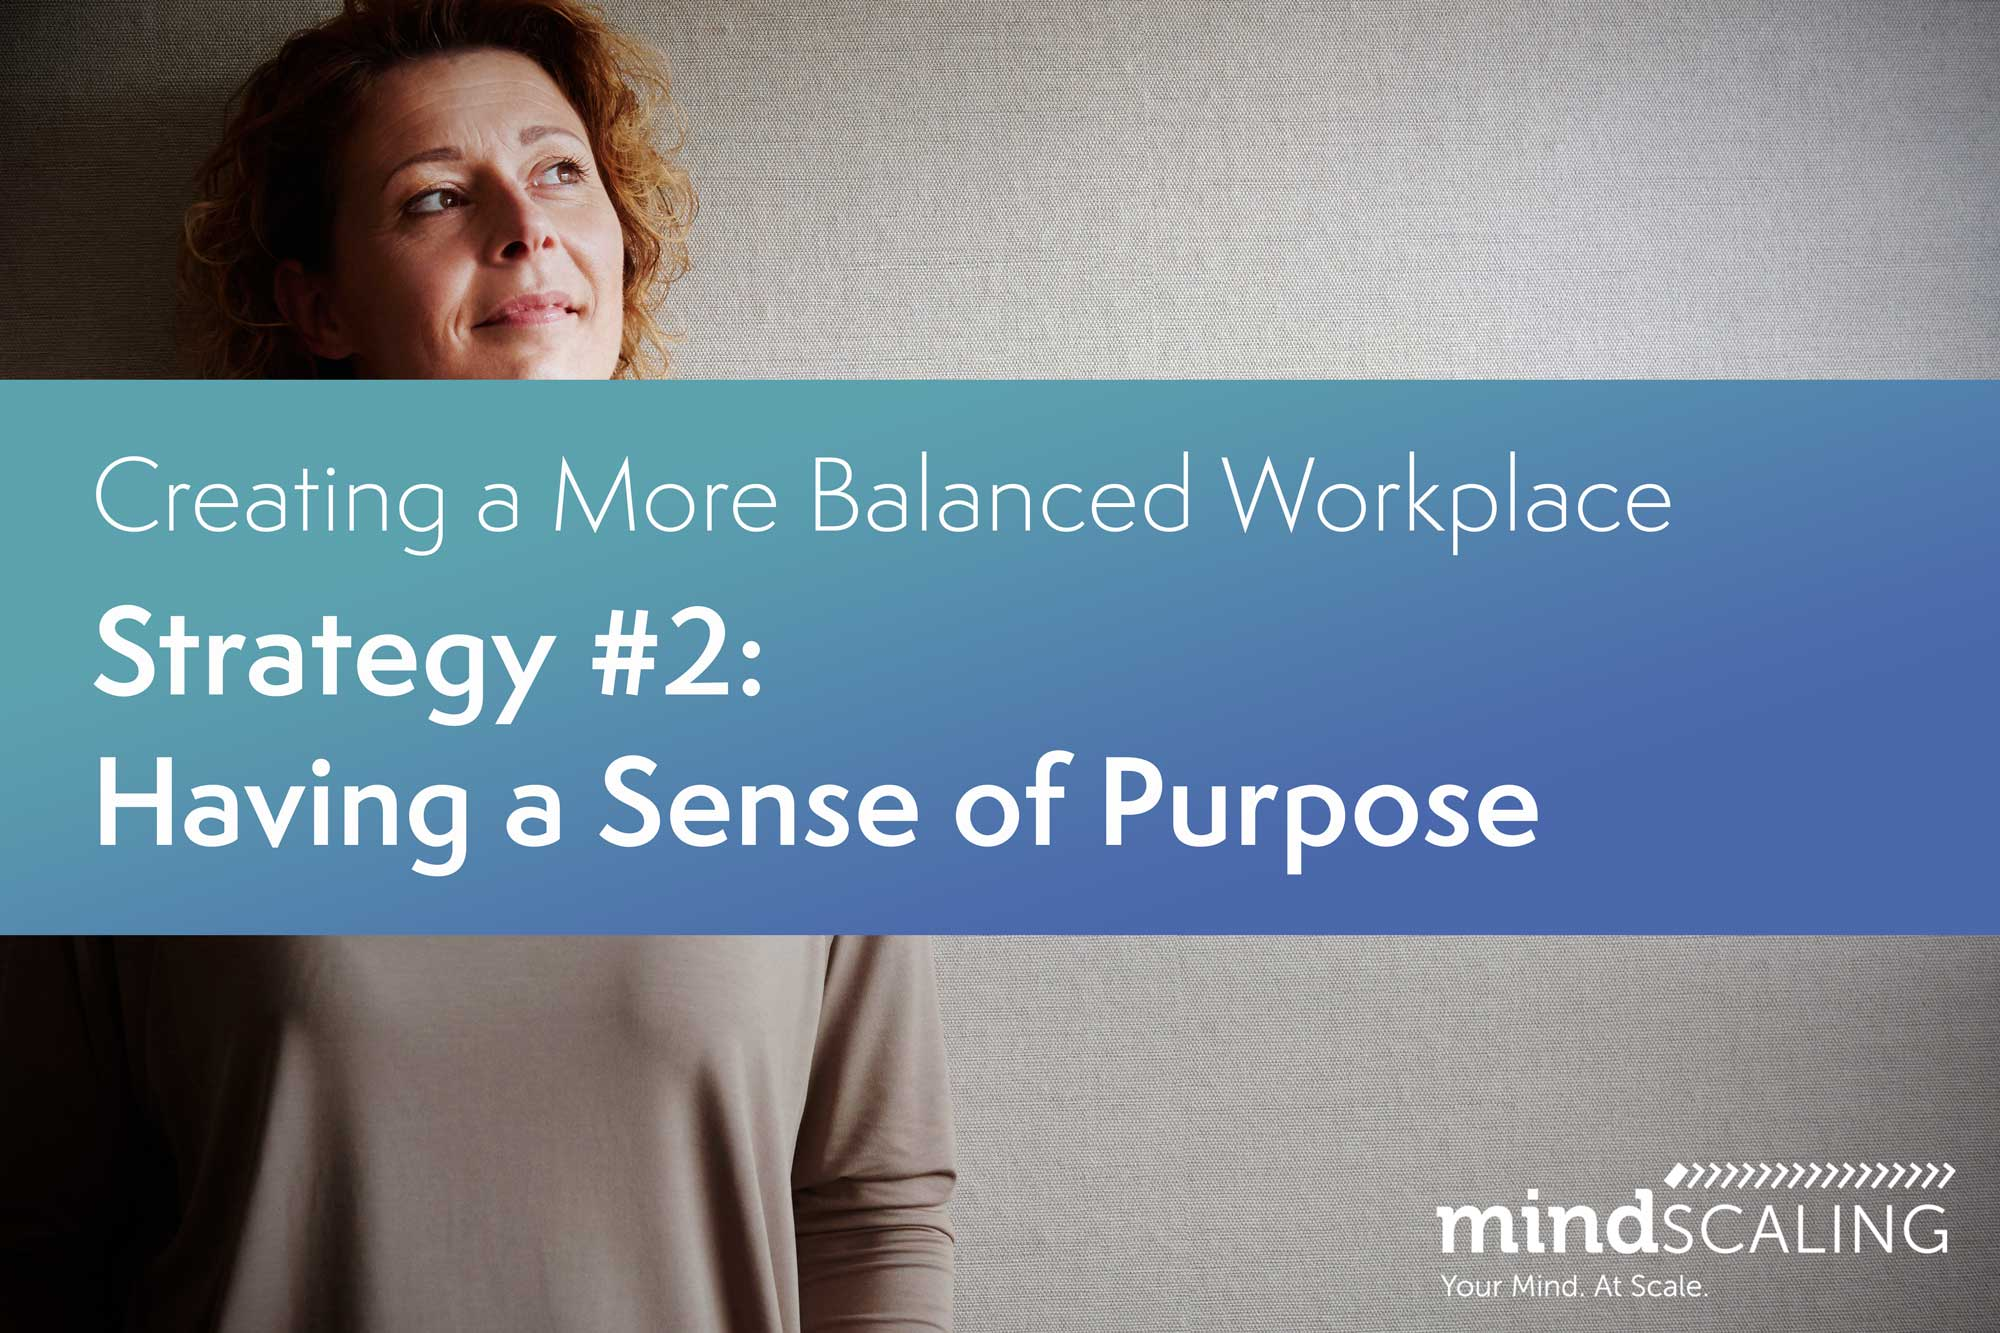 Creating a More Balanced Workplace: Strategy #2: Having a Sense of Purpose